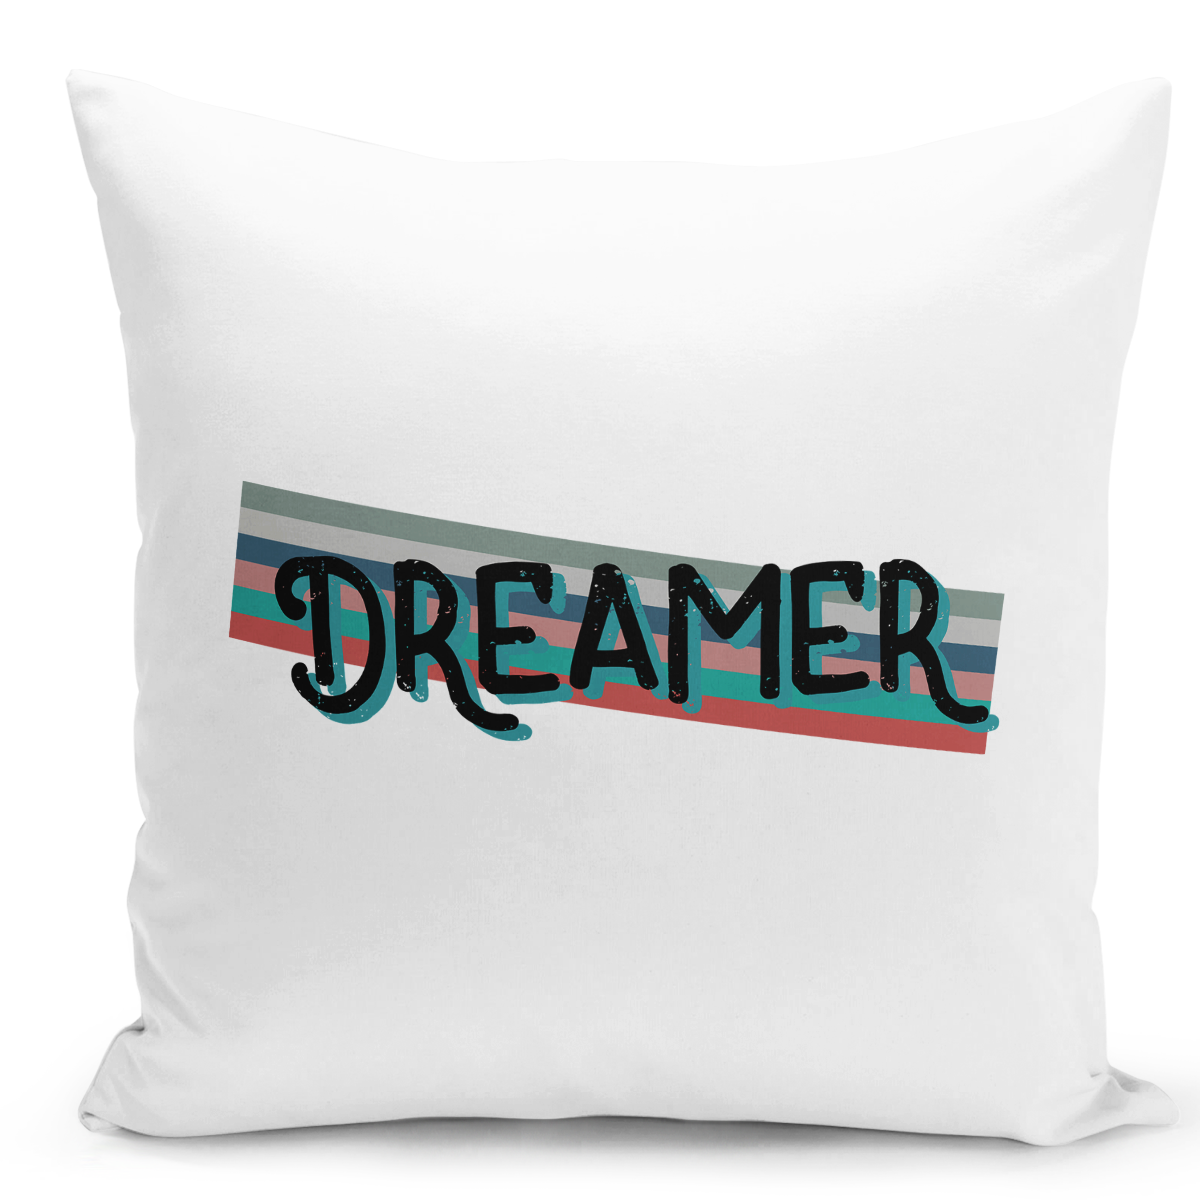 16x16-inch-Throw-Pillow-for-Home-Decor-with-Stuffing-Dreamers-Pillow-